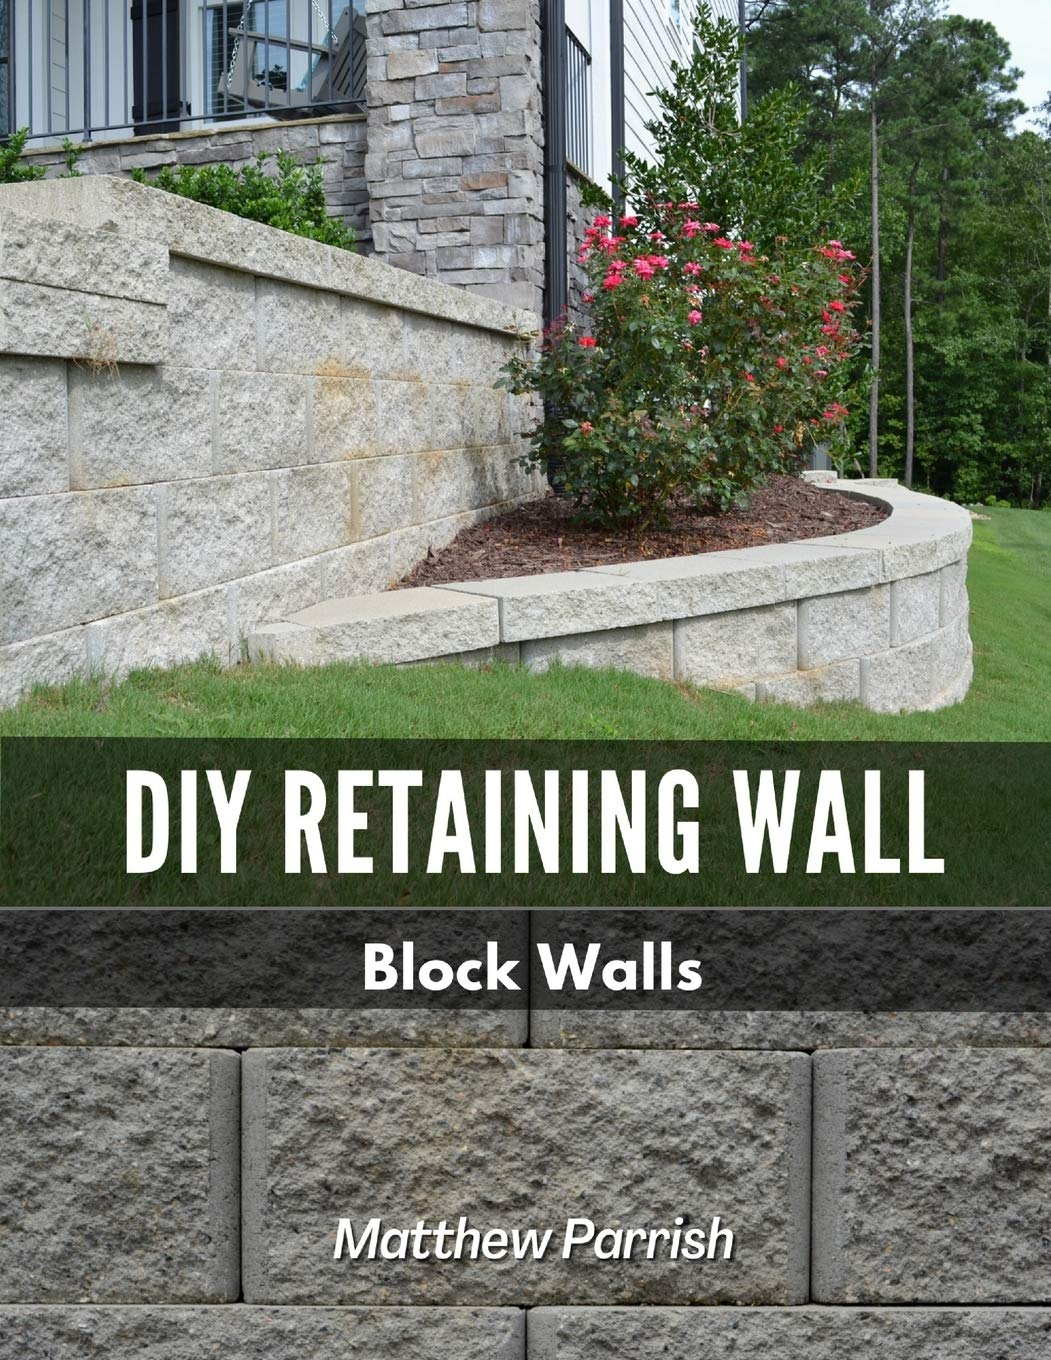 DIY Retaining Wall - Block Walls: Helping you with all steps of